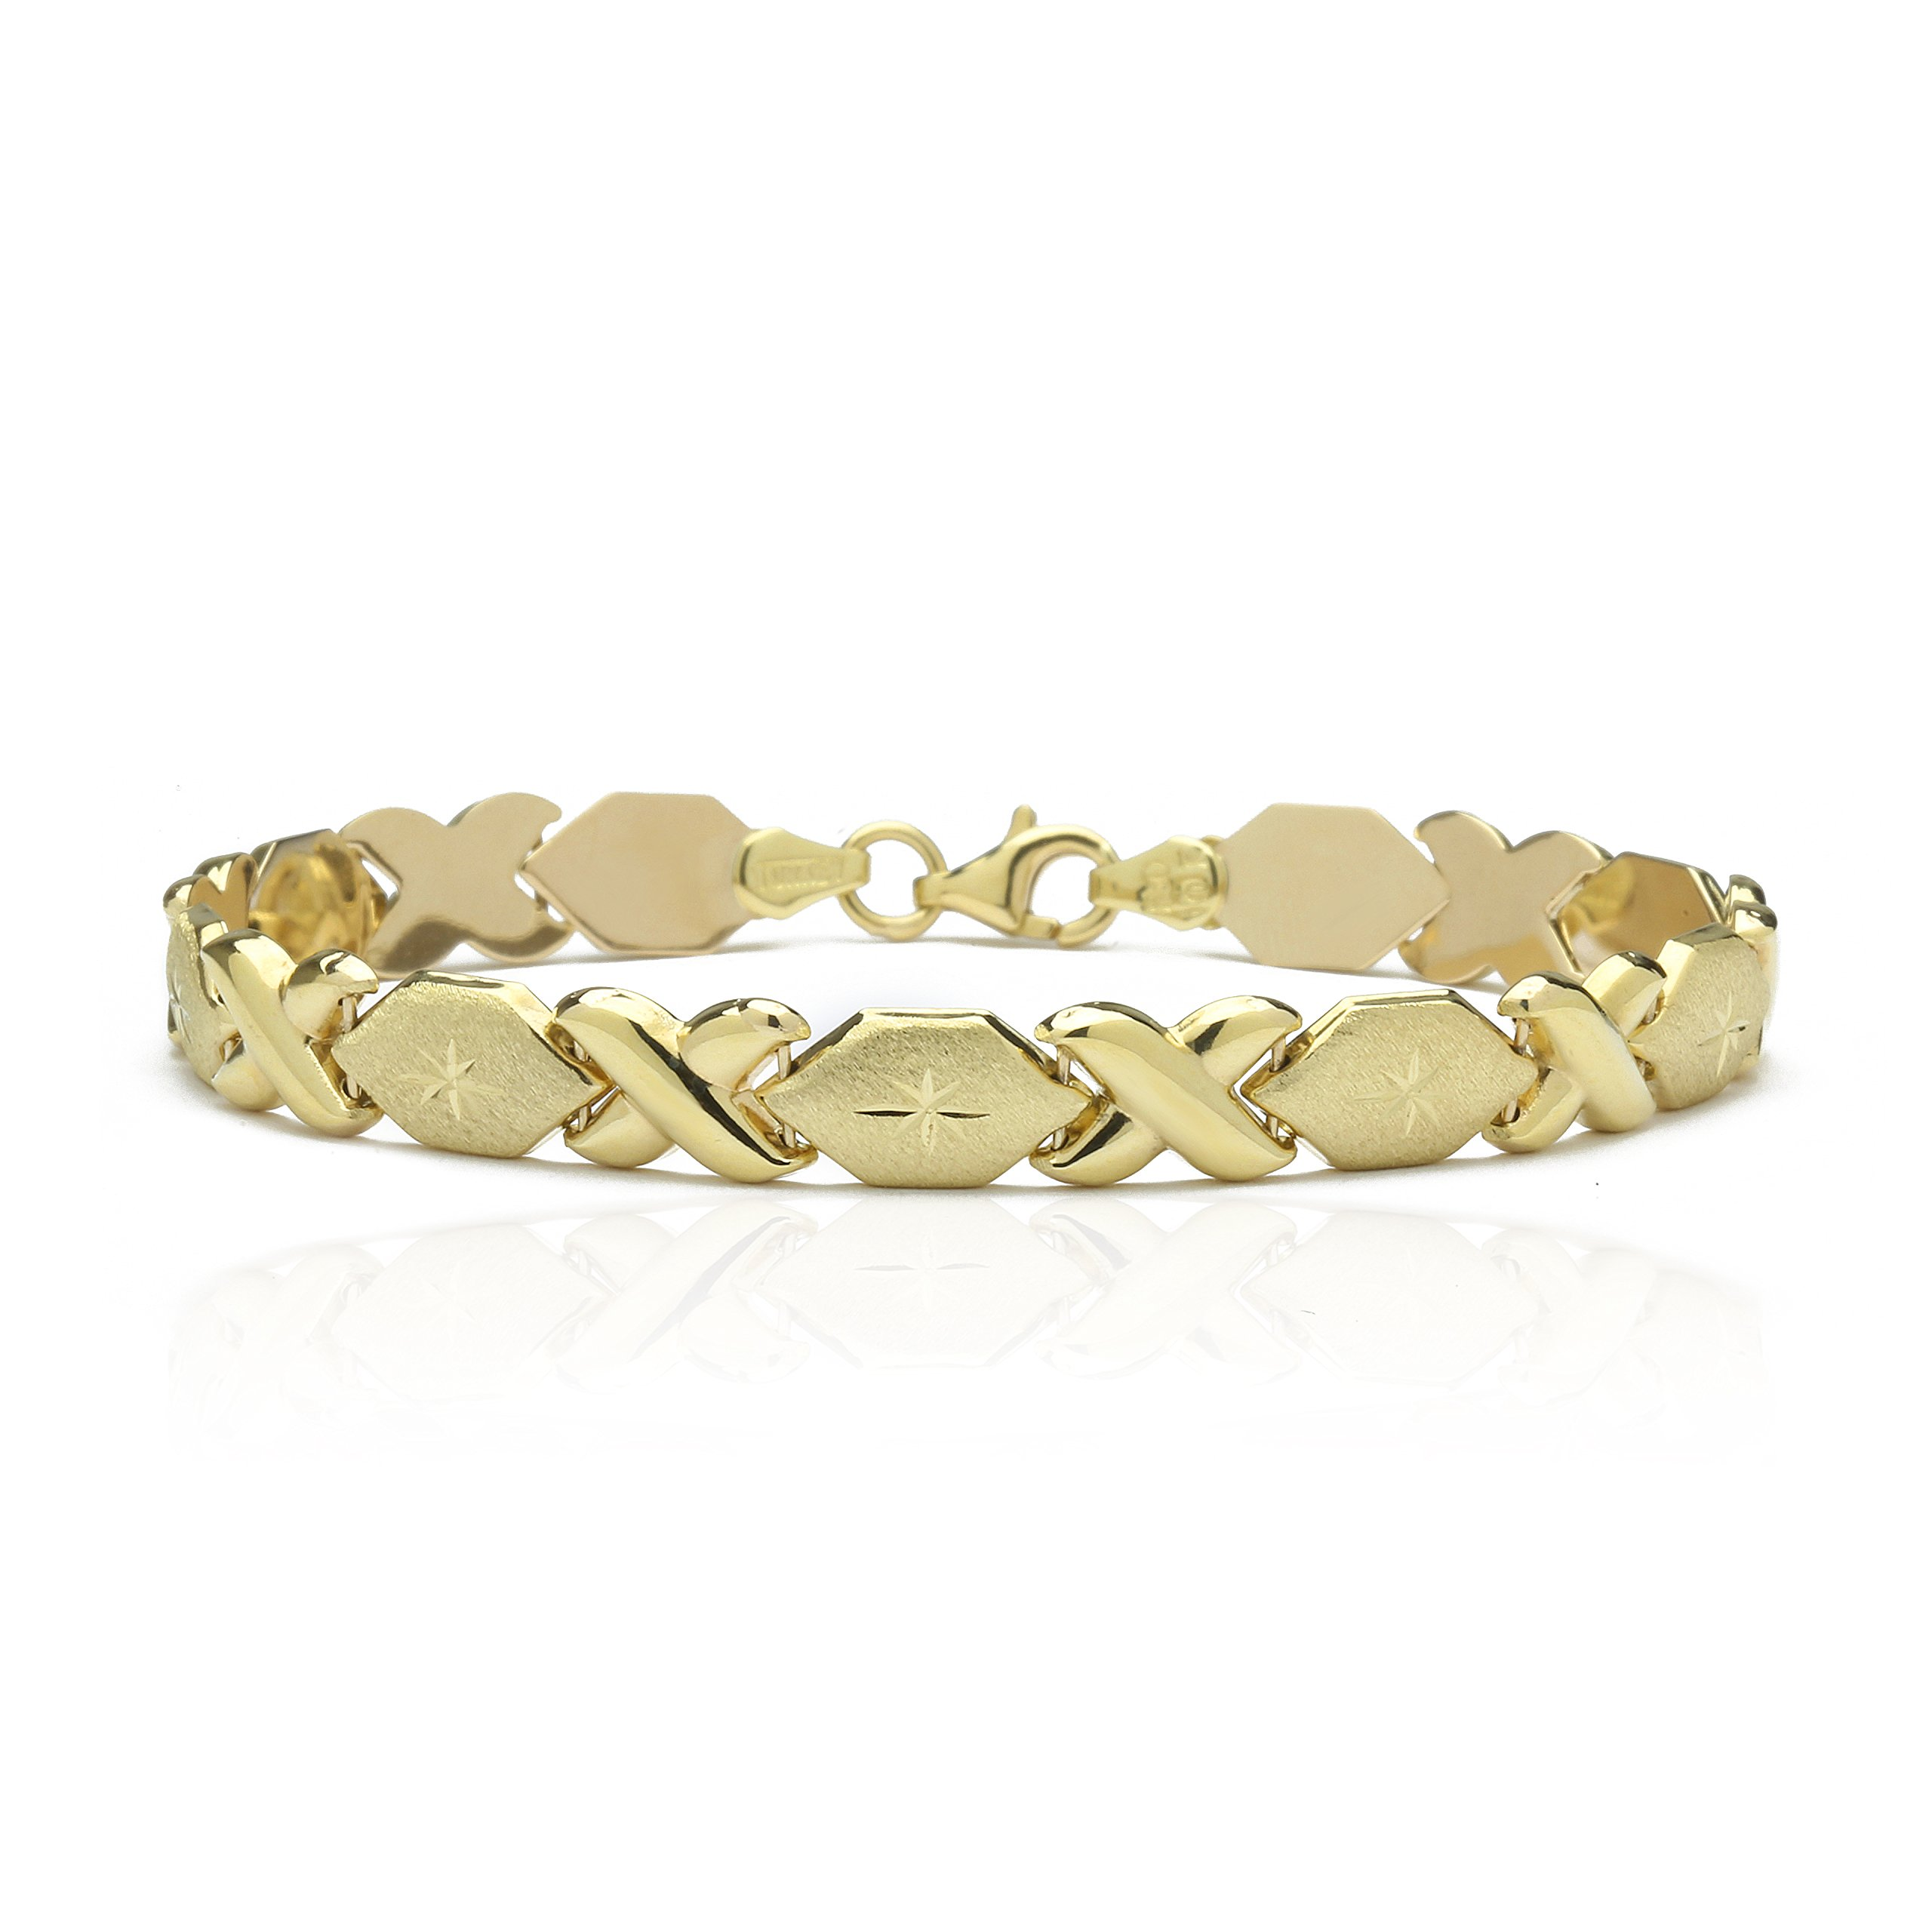 8 Inch 10k Yellow Gold Stampato Xoxo X & O Hugs Kisses Chain Bracelet for Women and Girls by SL Gold Imports